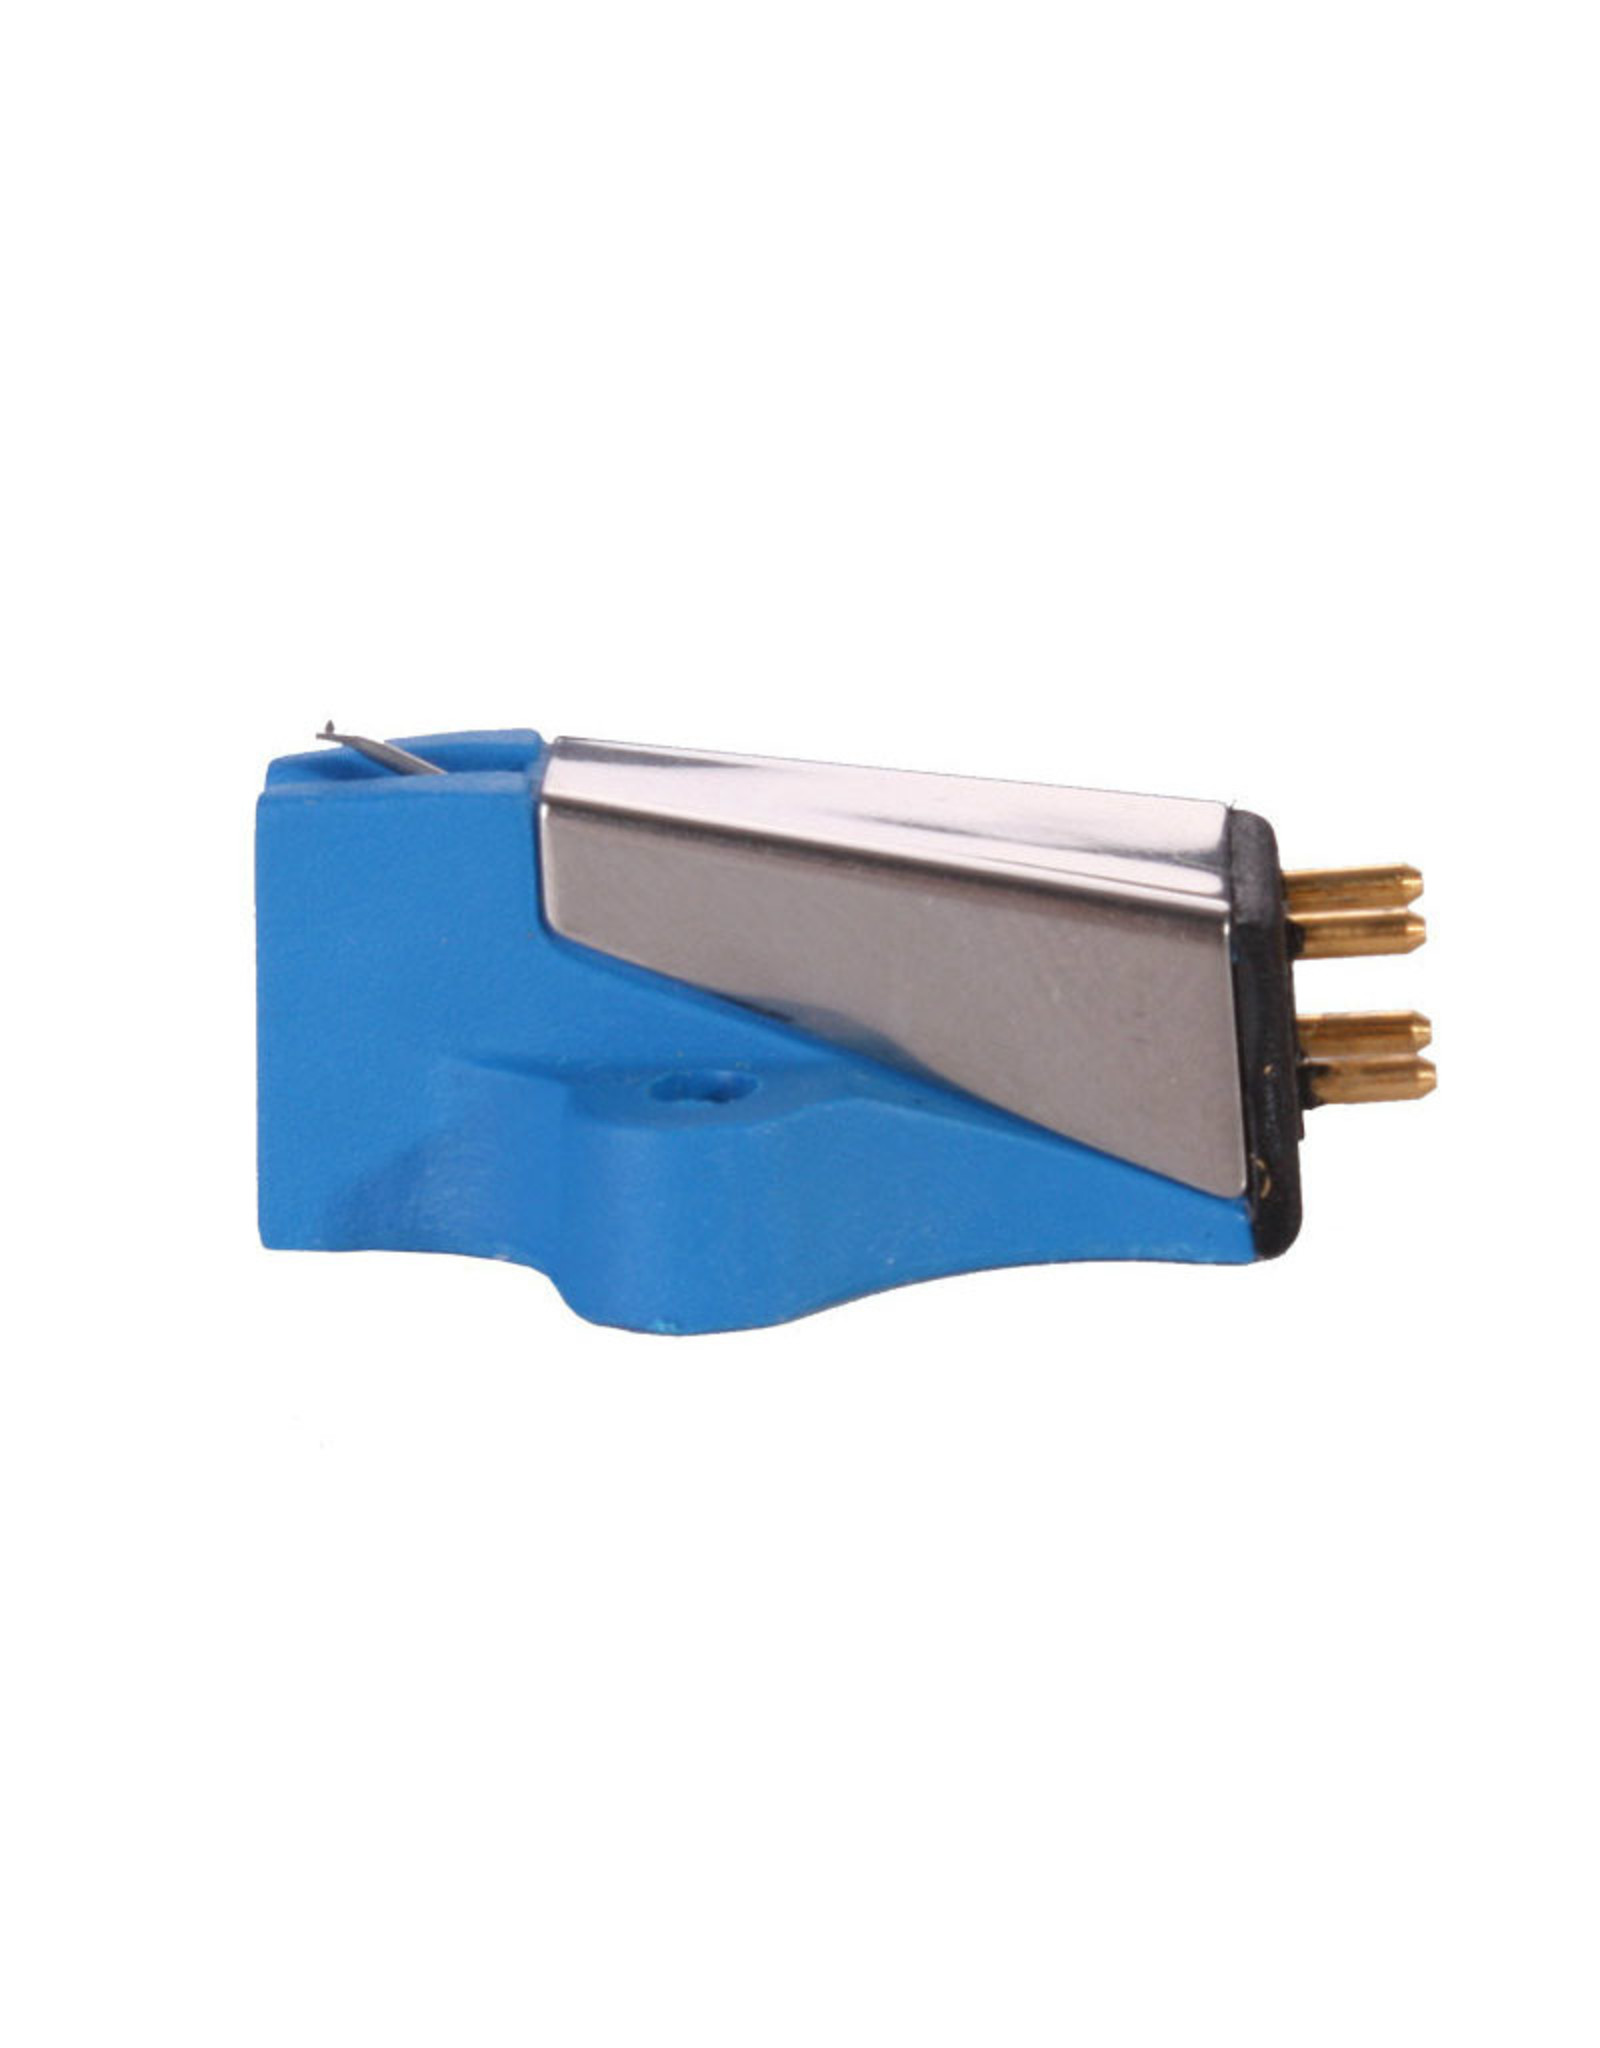 Rega Rega Elys 2 Phono Cartridge